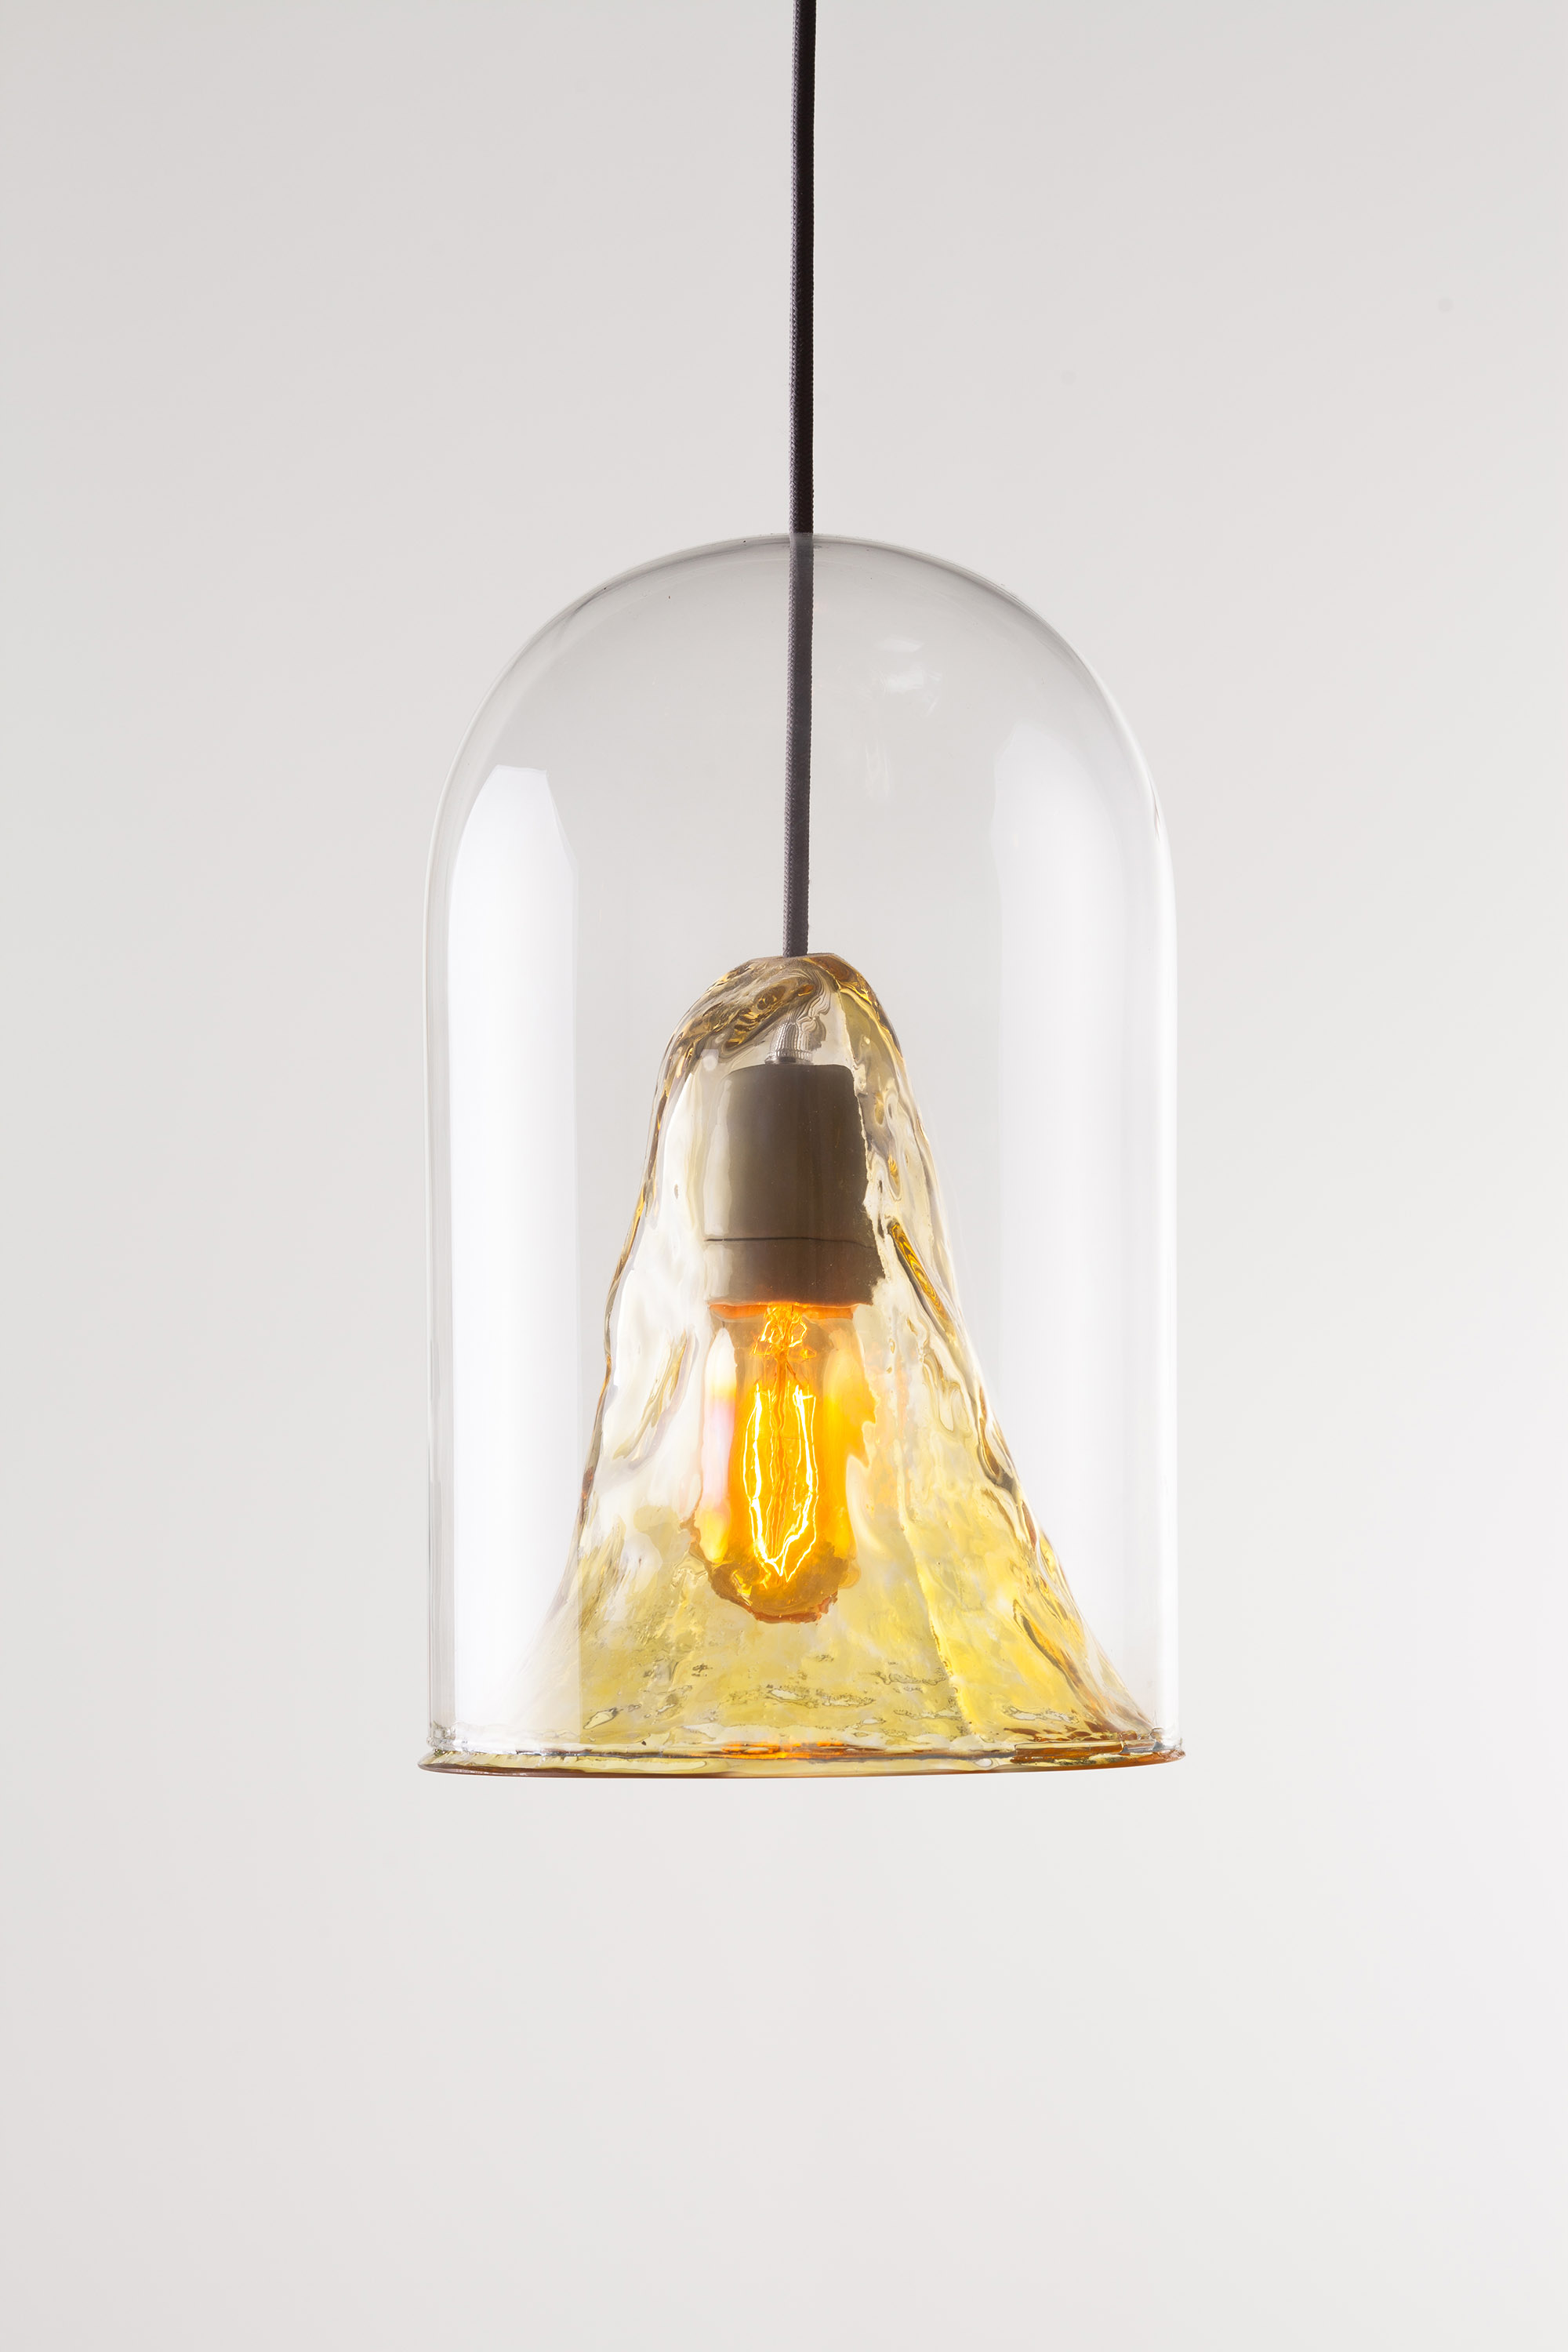 Pico Lamp by André Teoman